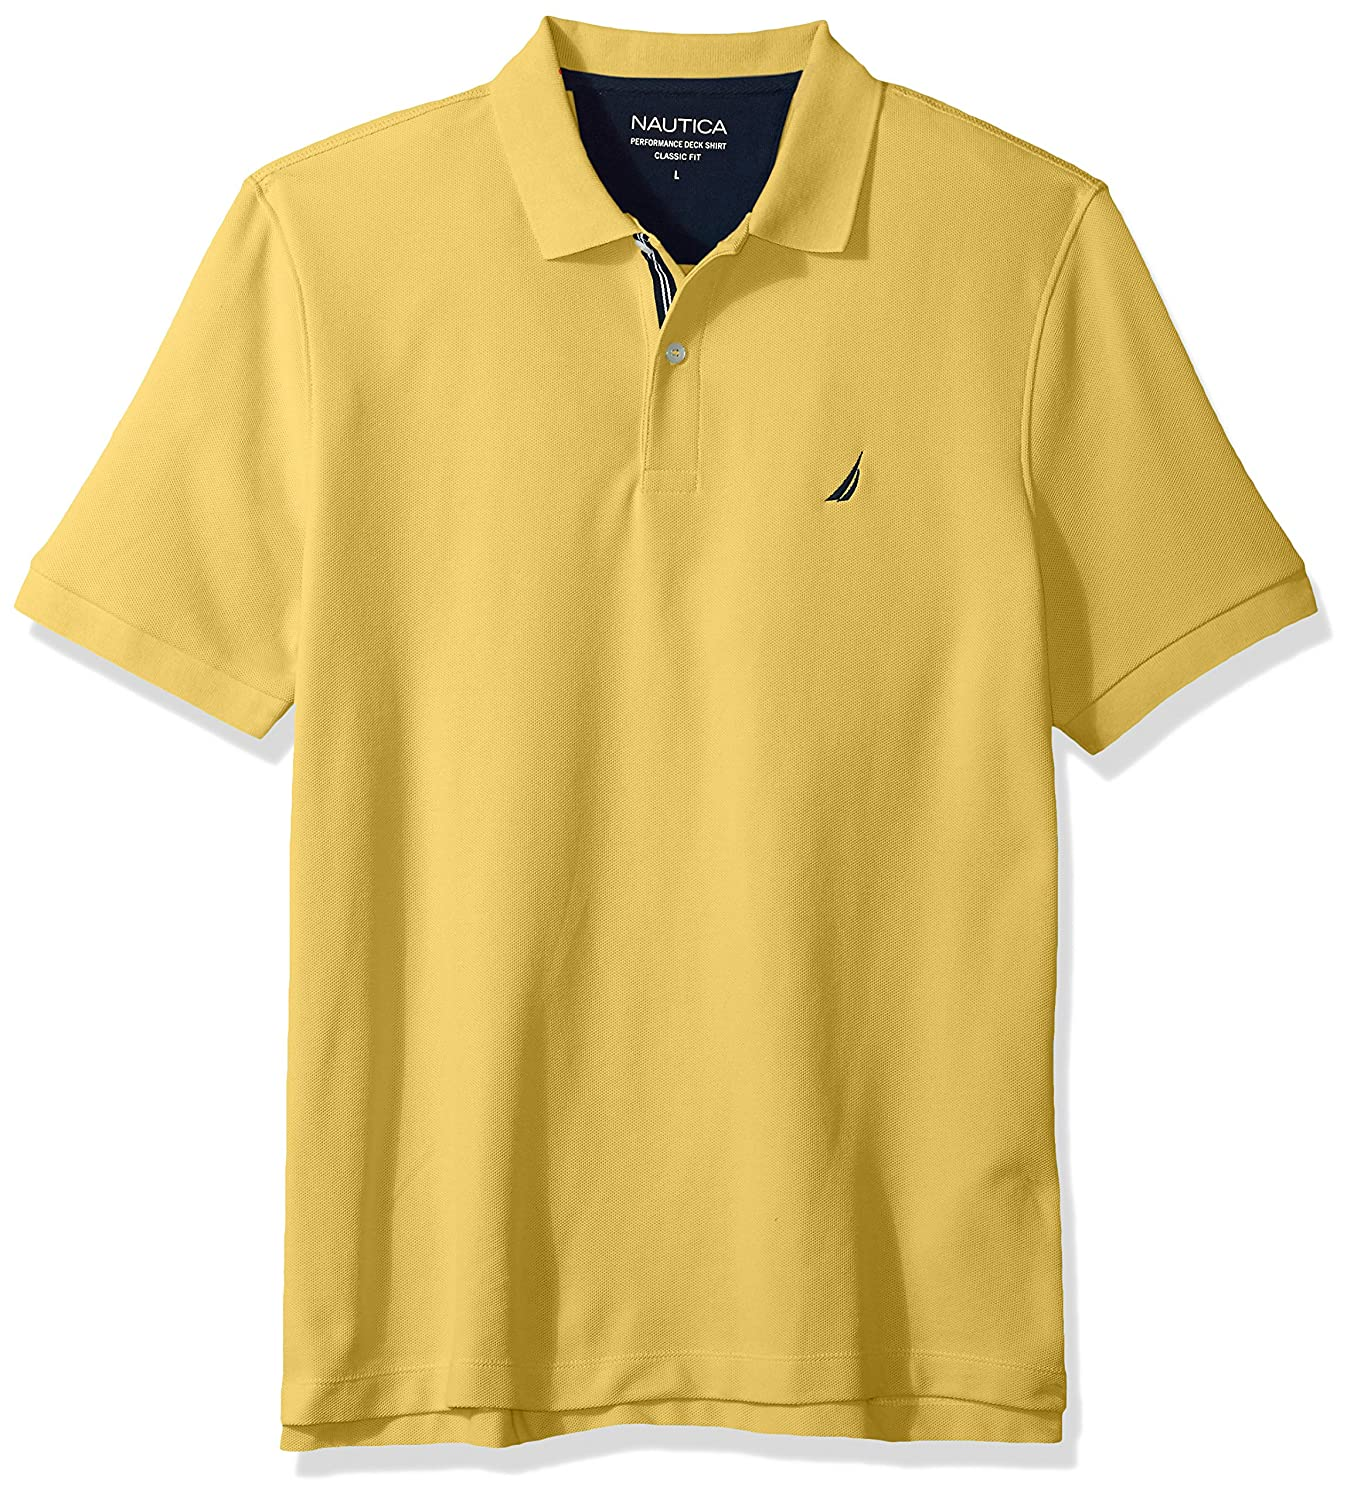 Nautica Men's Short Sleeve Solid Deck Polo Nautica Men's Sportswear K41050